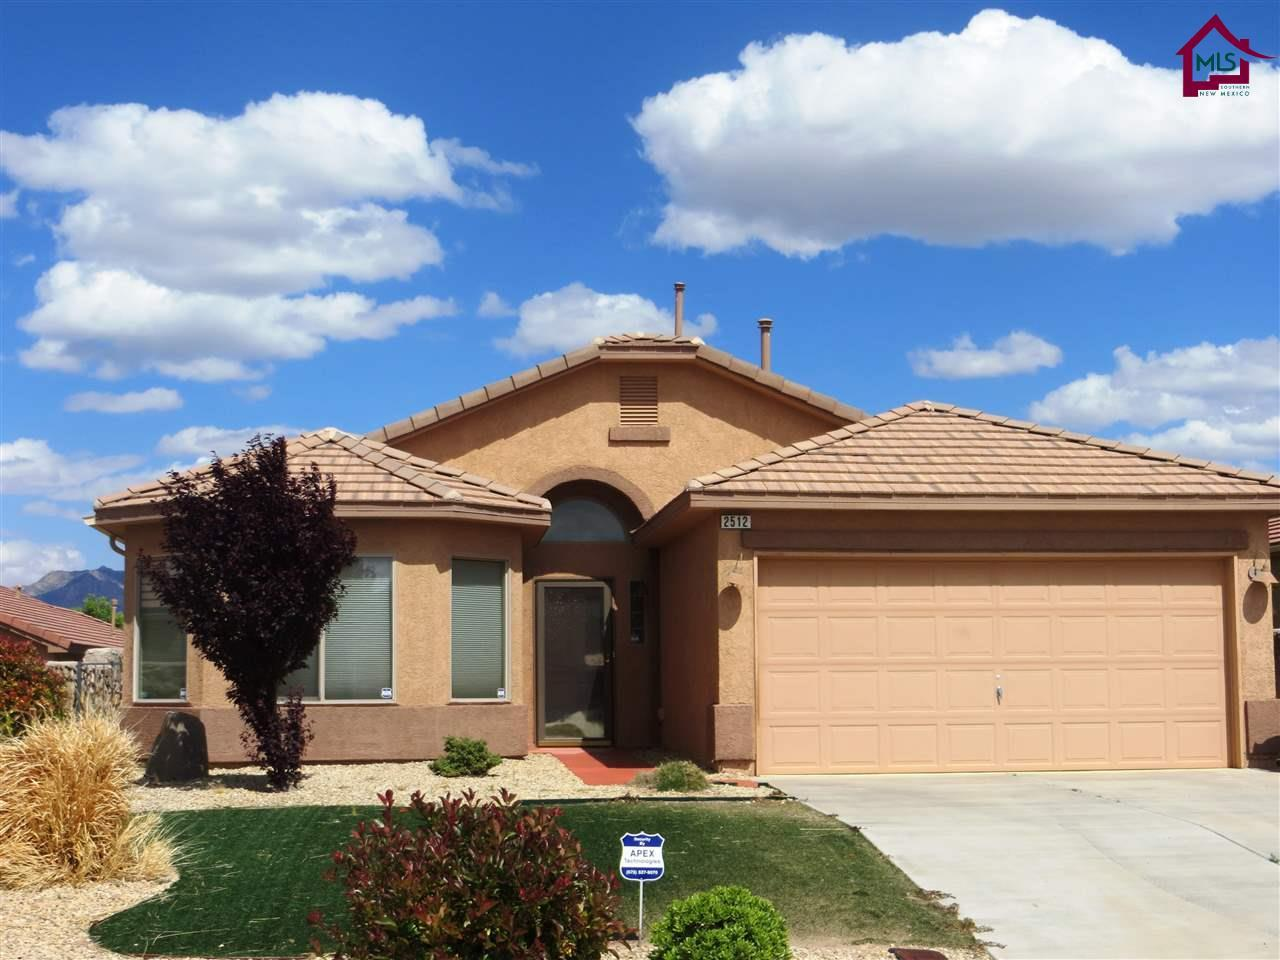 2512 tierra grande court las cruces nm 88011 mls for Home builders in las cruces nm